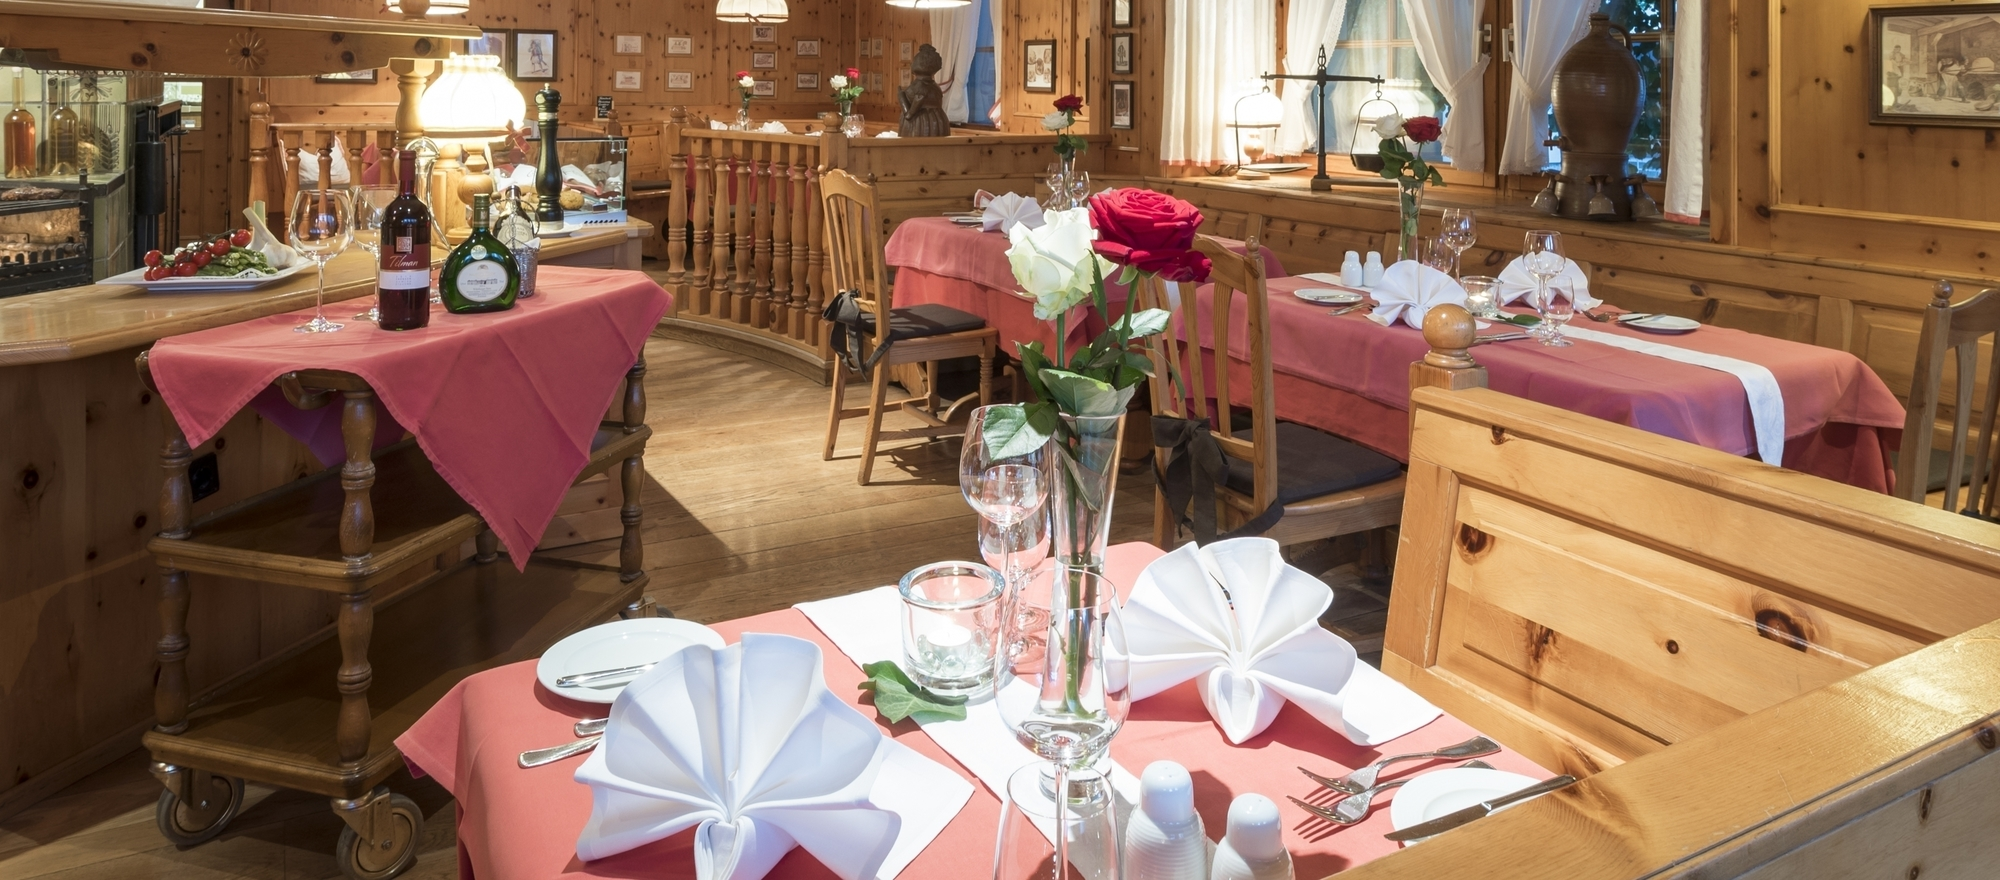 Restaurant in the Ringhotel Stadt Coburg in Coburg, 3-star superior Hotel in Franconia